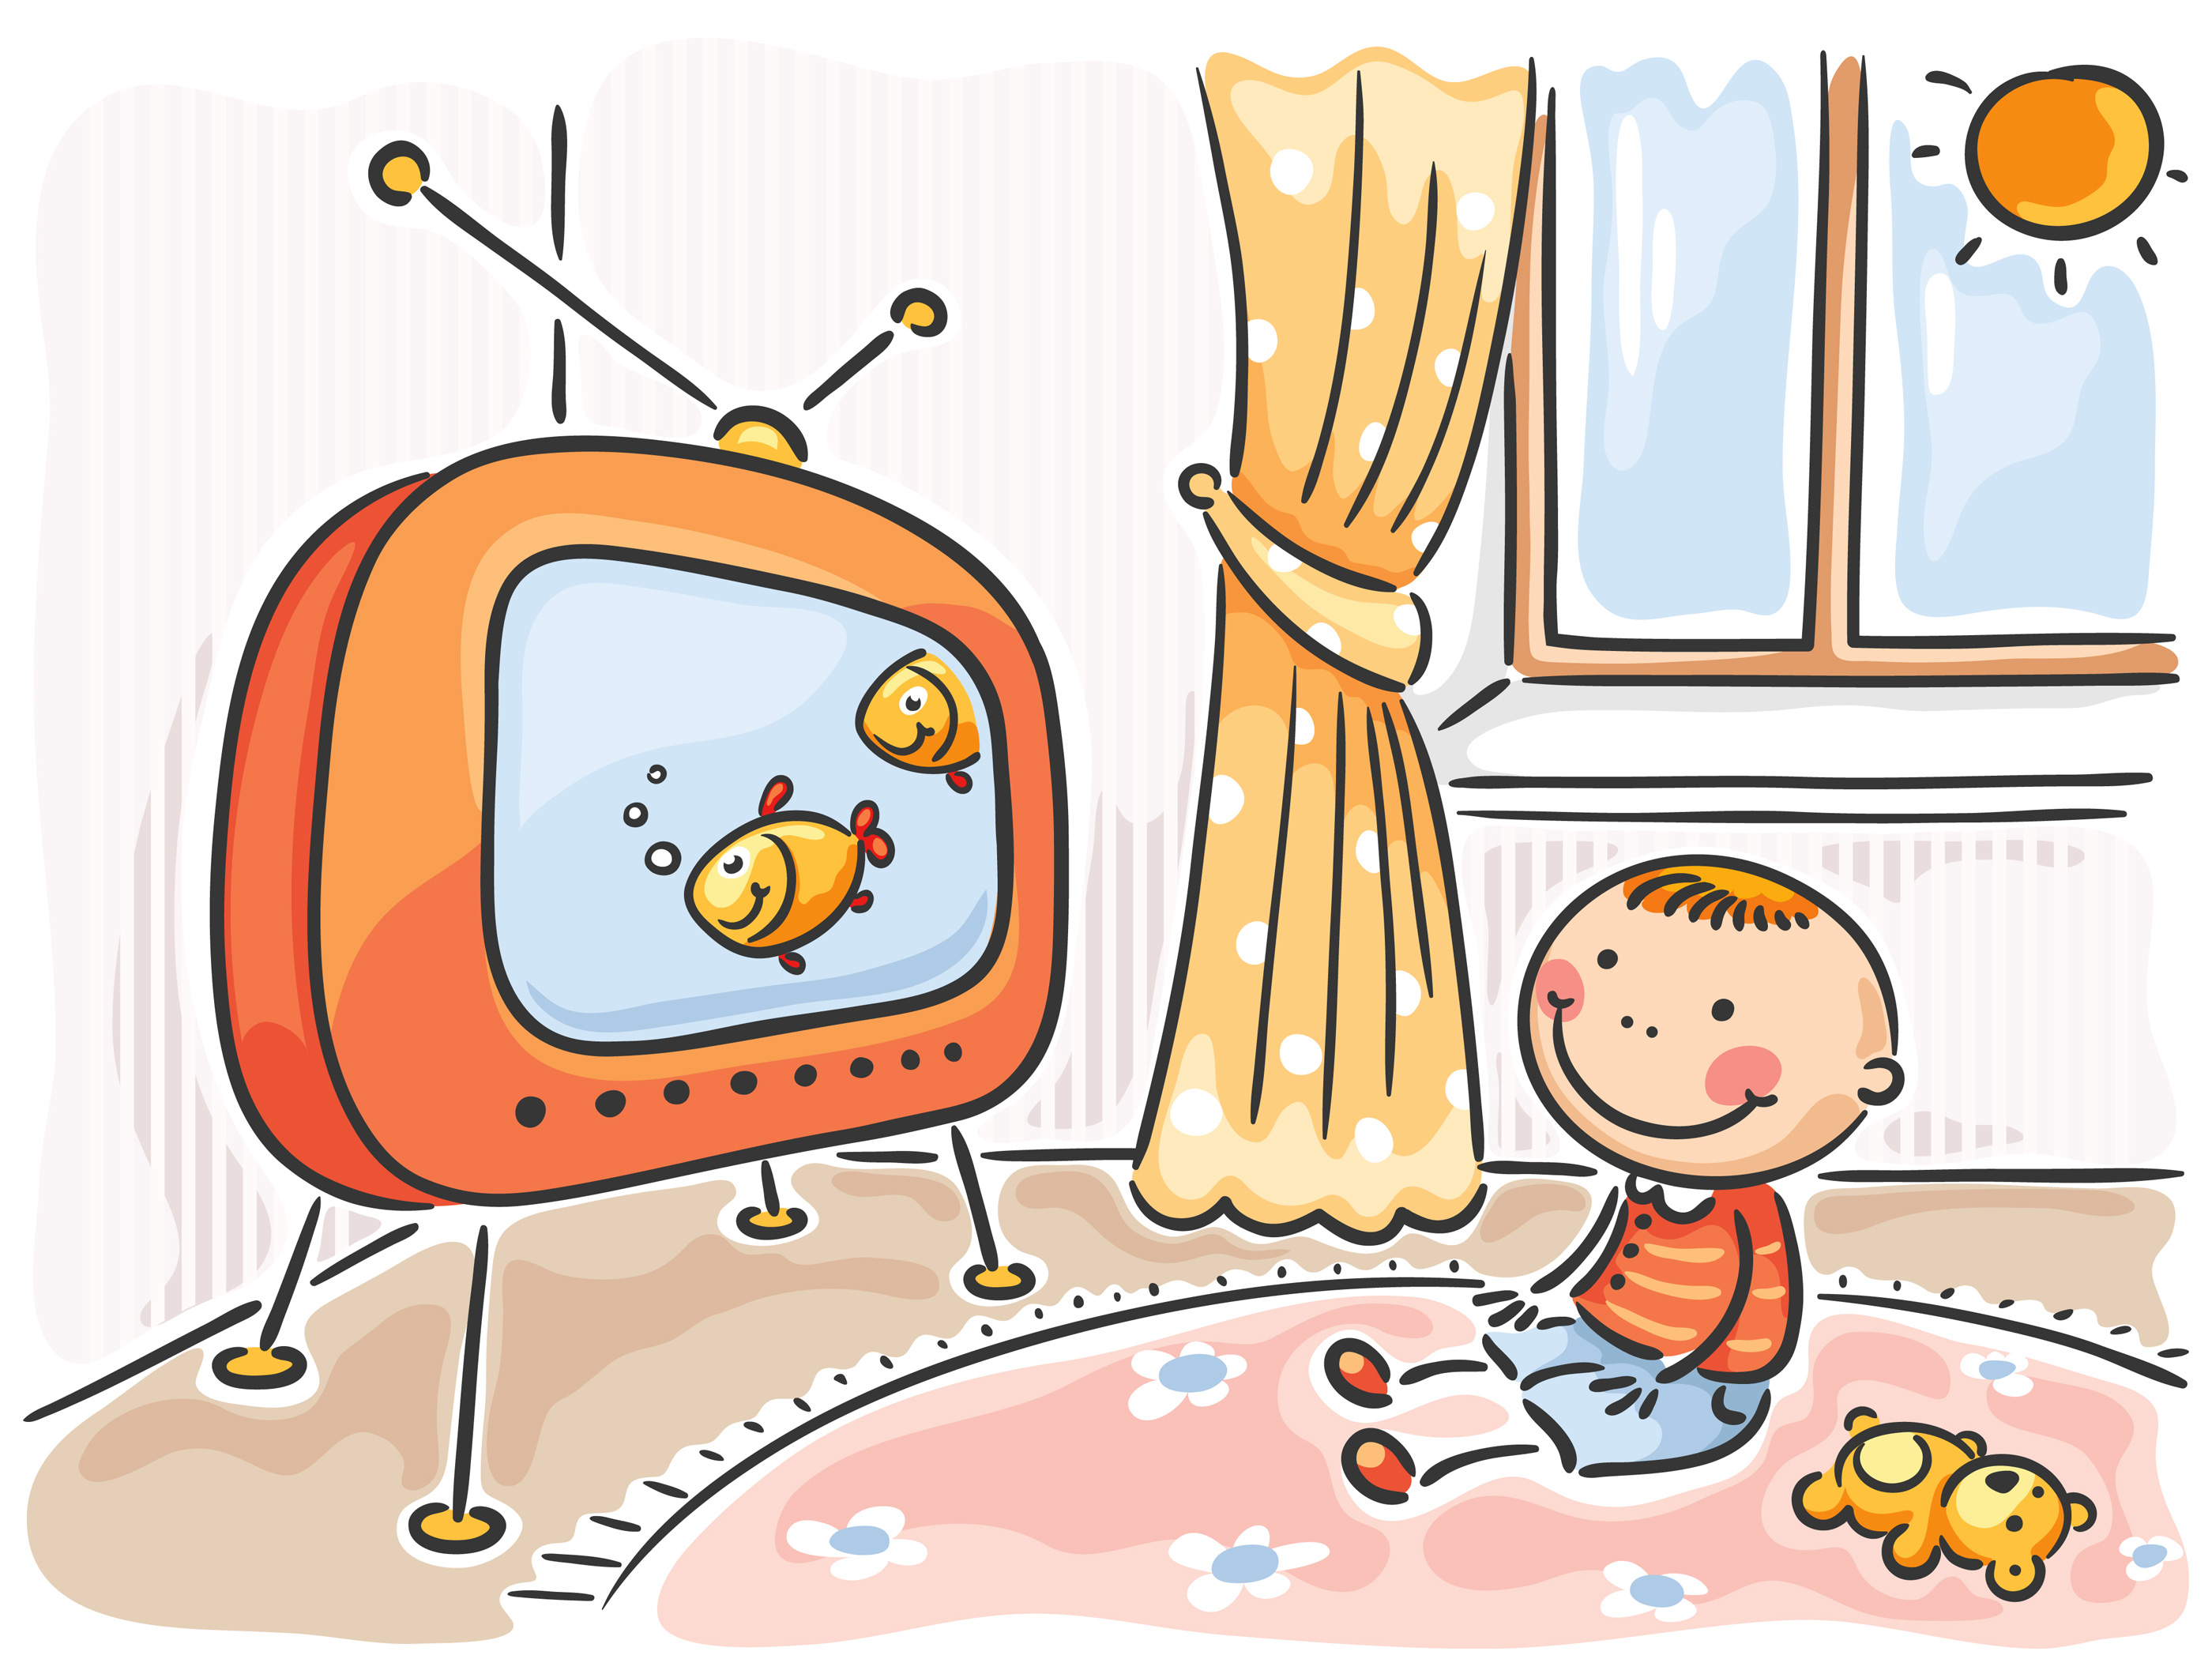 Watch clipart watch television Cliparts Watching Cliparts Zone Television